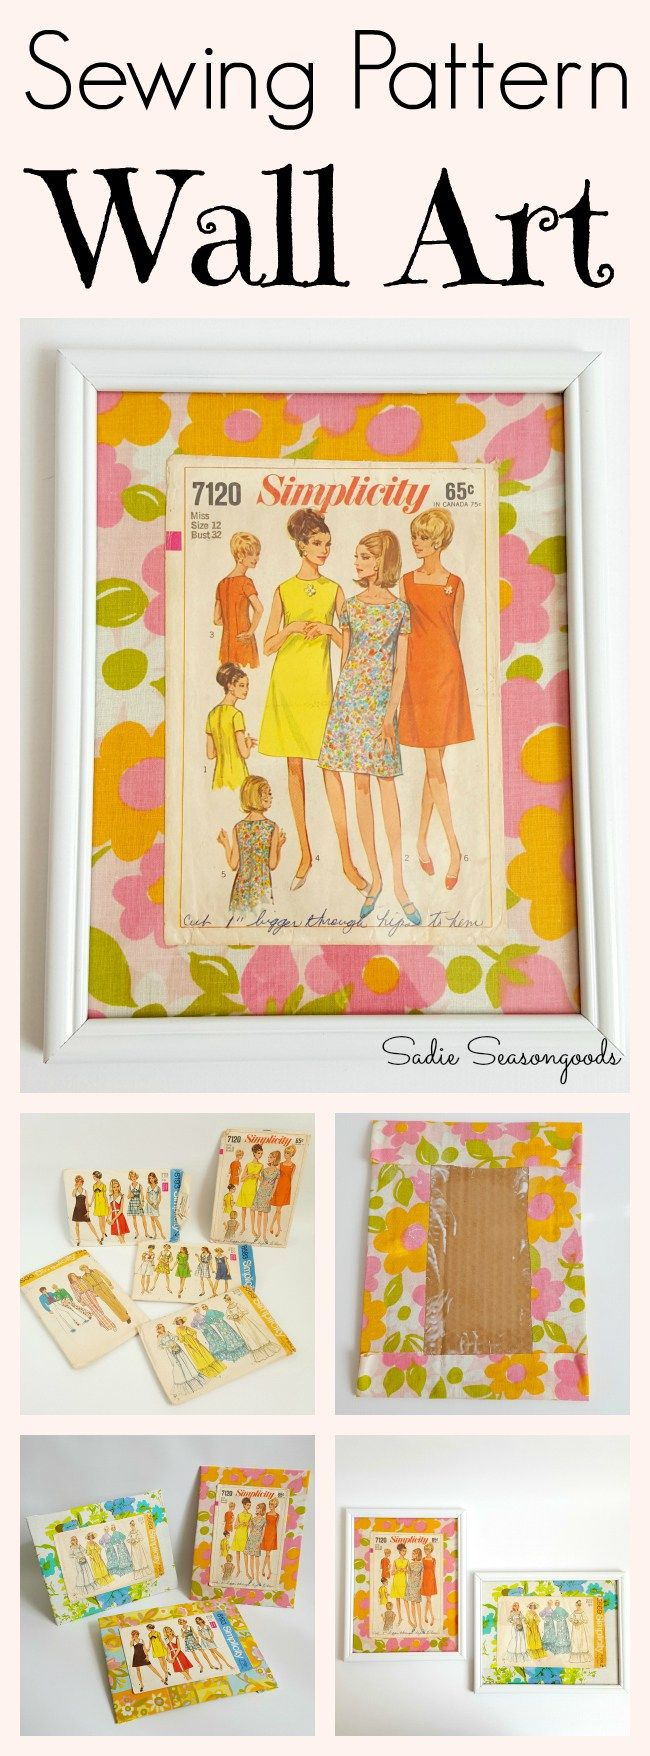 Fashion Wall Art using Repurposed Vintage Sewing Patterns | Sadie ...